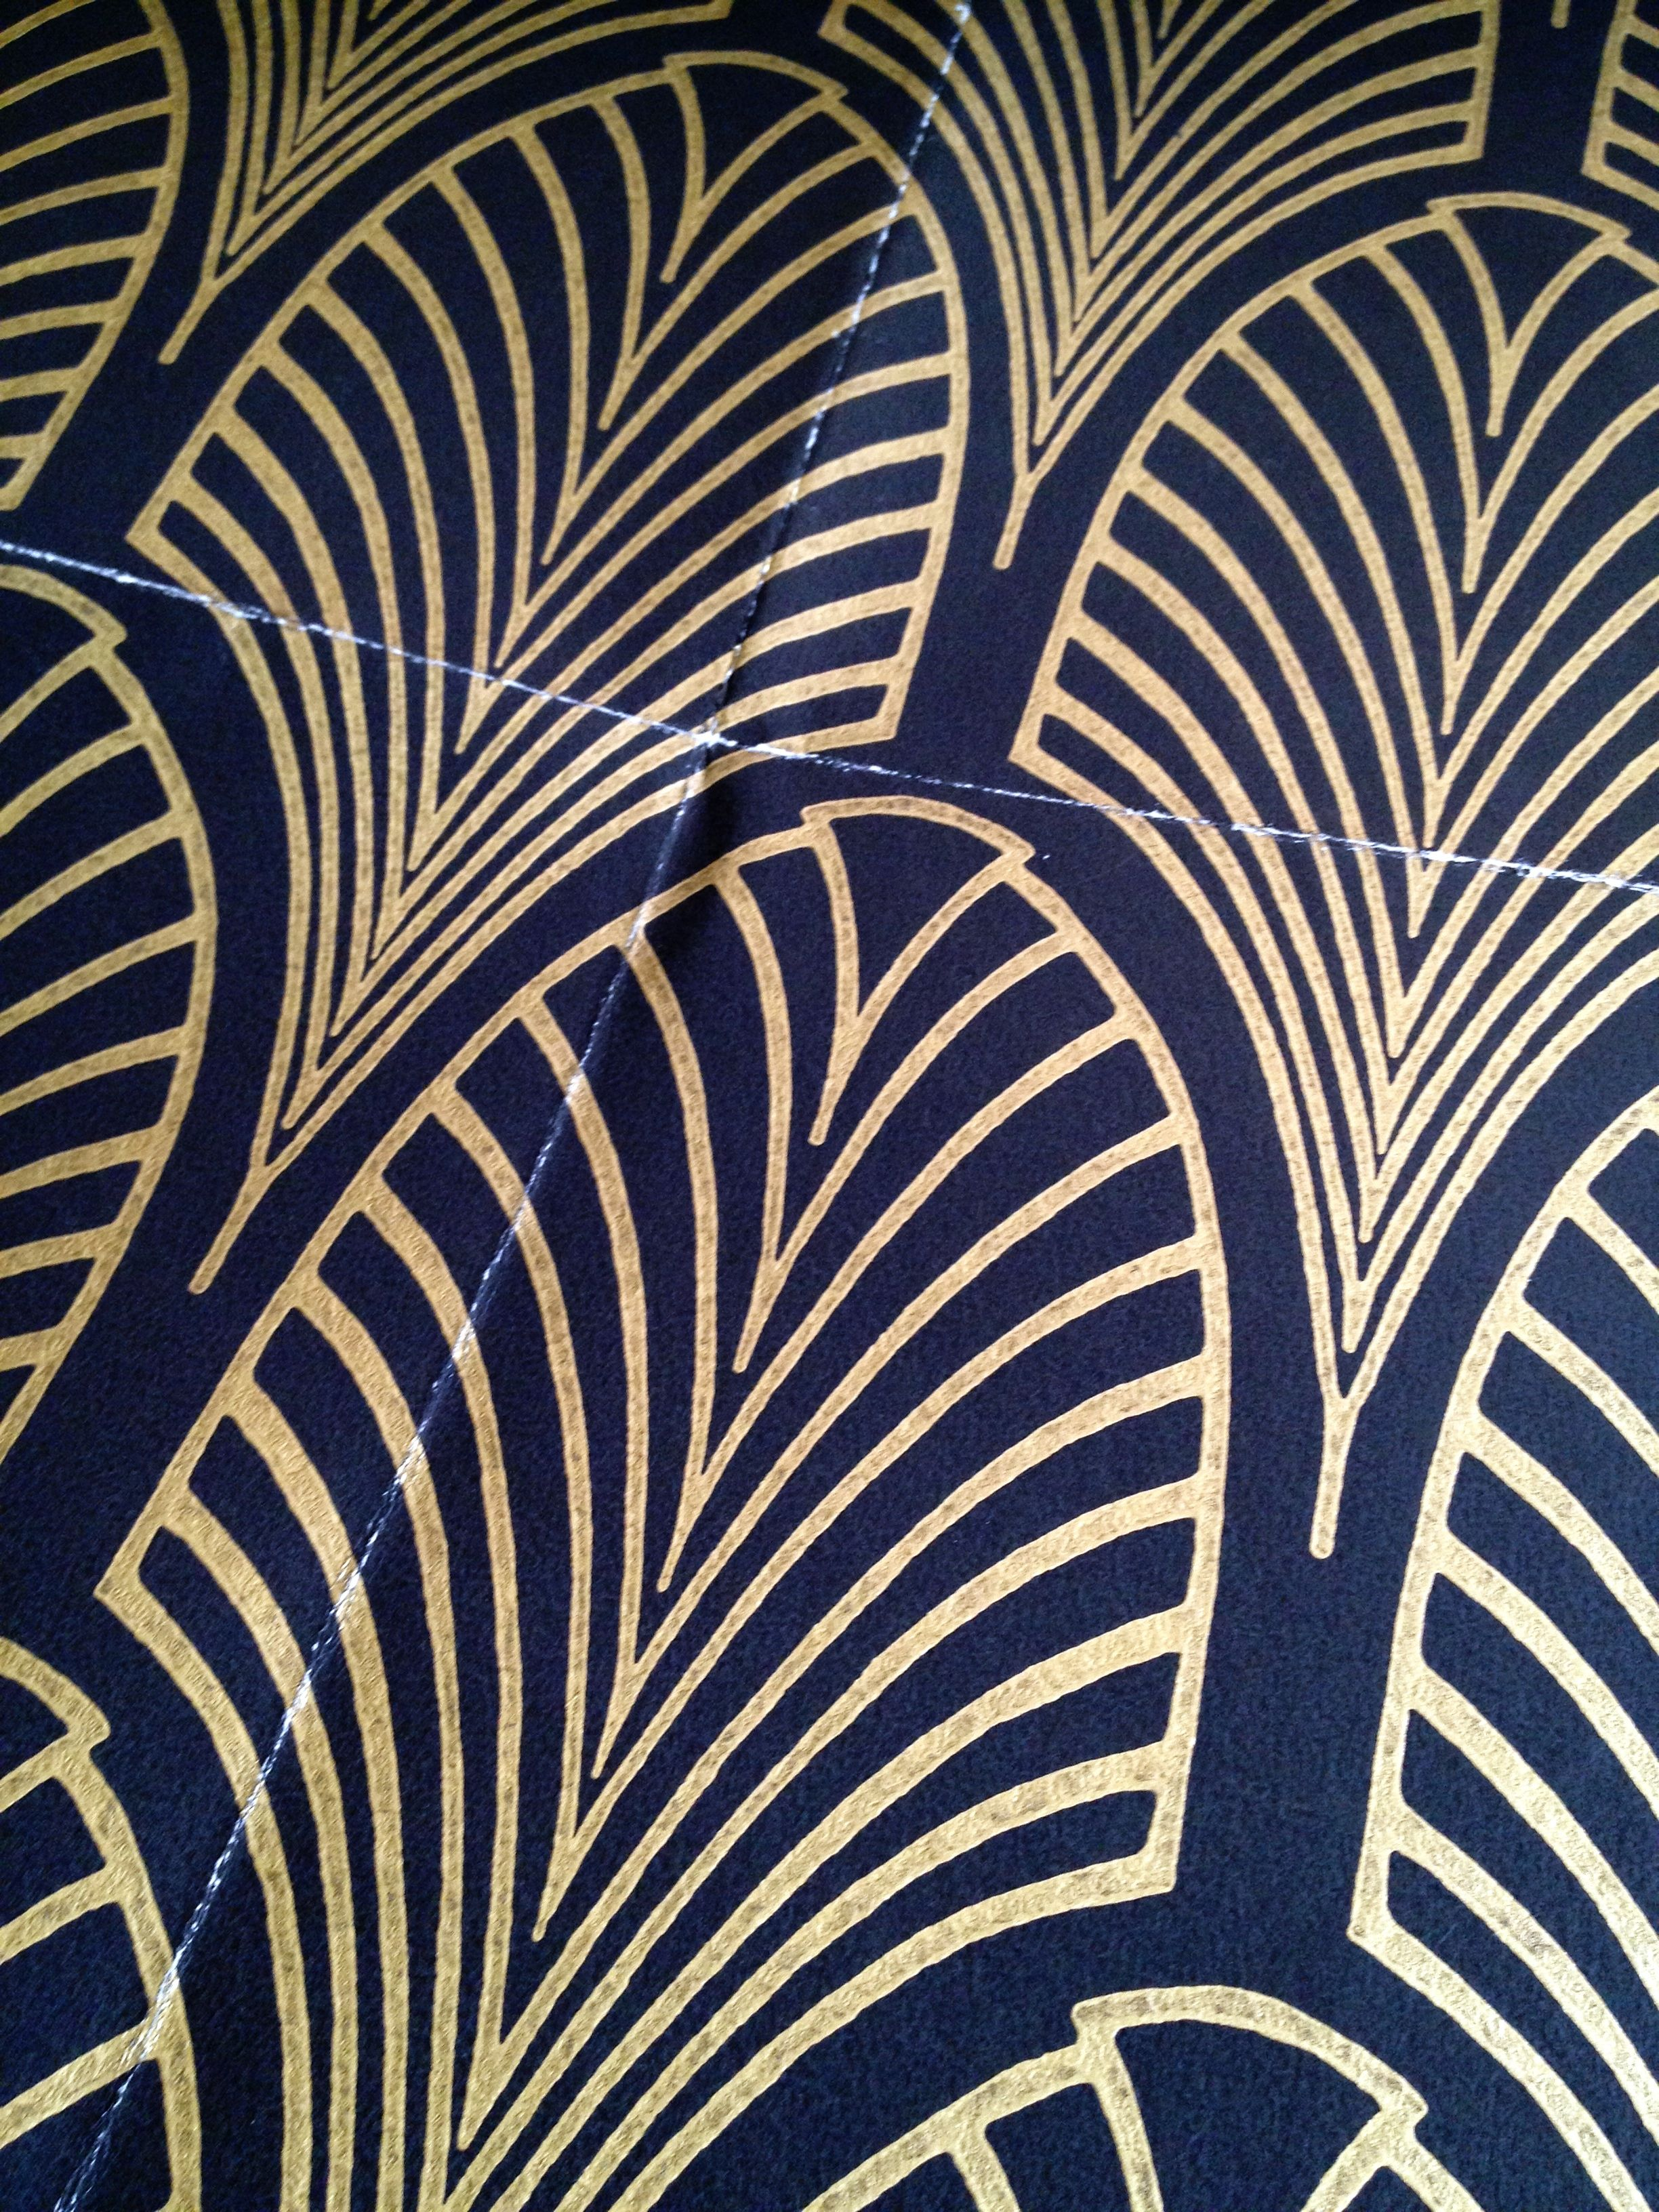 Black and gold Art Deco wallpaper from Cole \u0026 Son. Of course